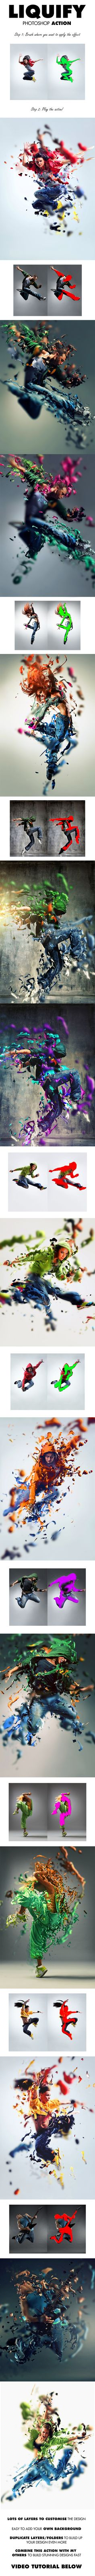 Liquify Photoshop Action - Photo Effects Actions #Photoshop #photography #cool #fun #ideas #design